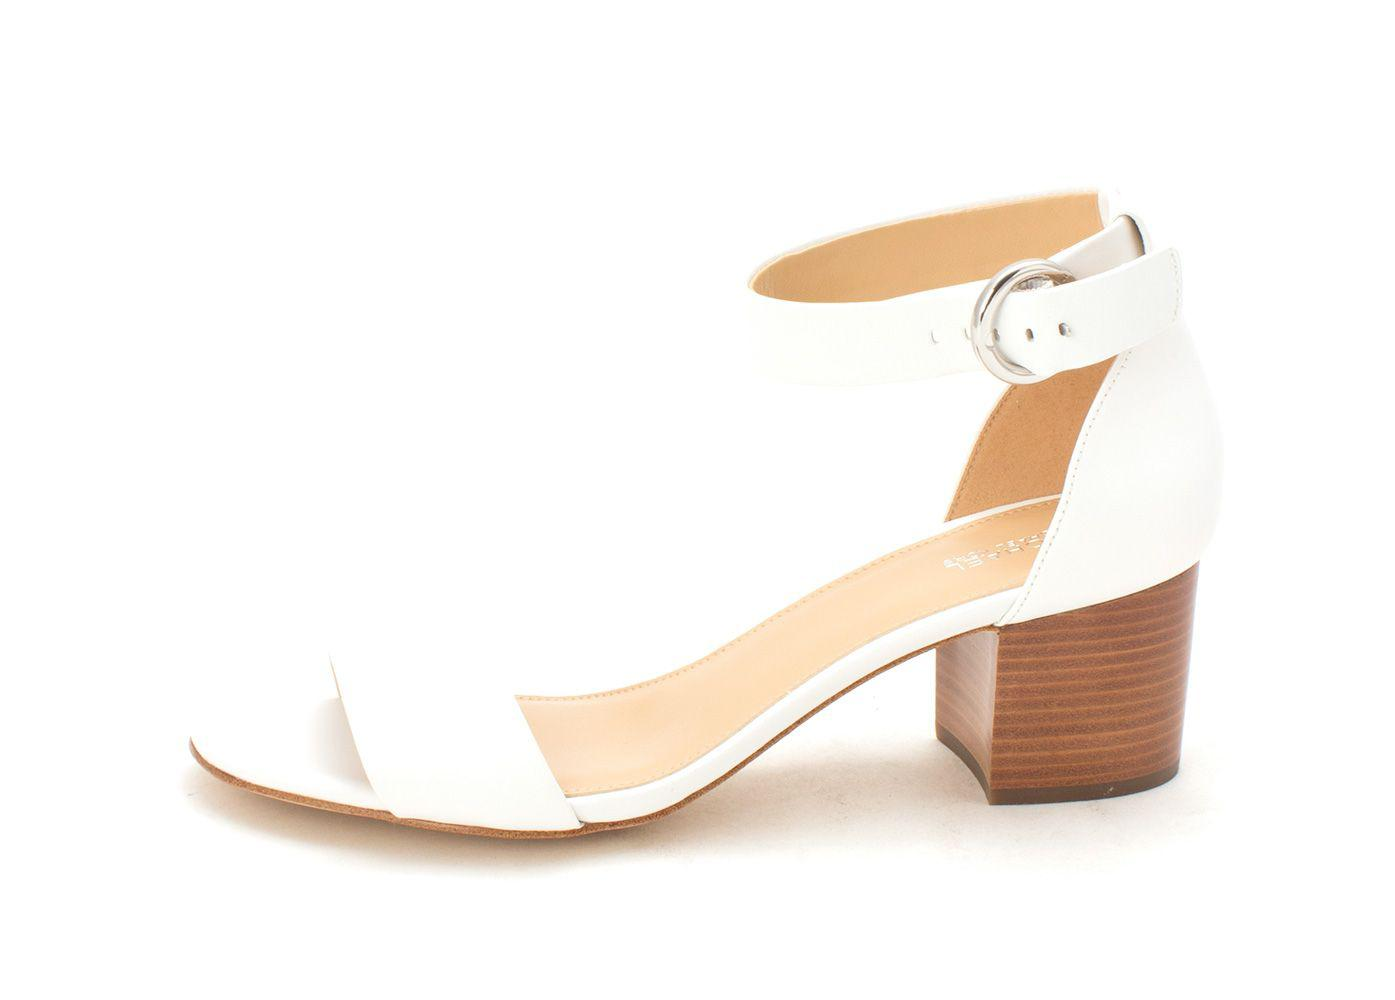 f9a776225b1 Lyst - Michael Michael Kors Womens Lena Leather Open Toe Special ...